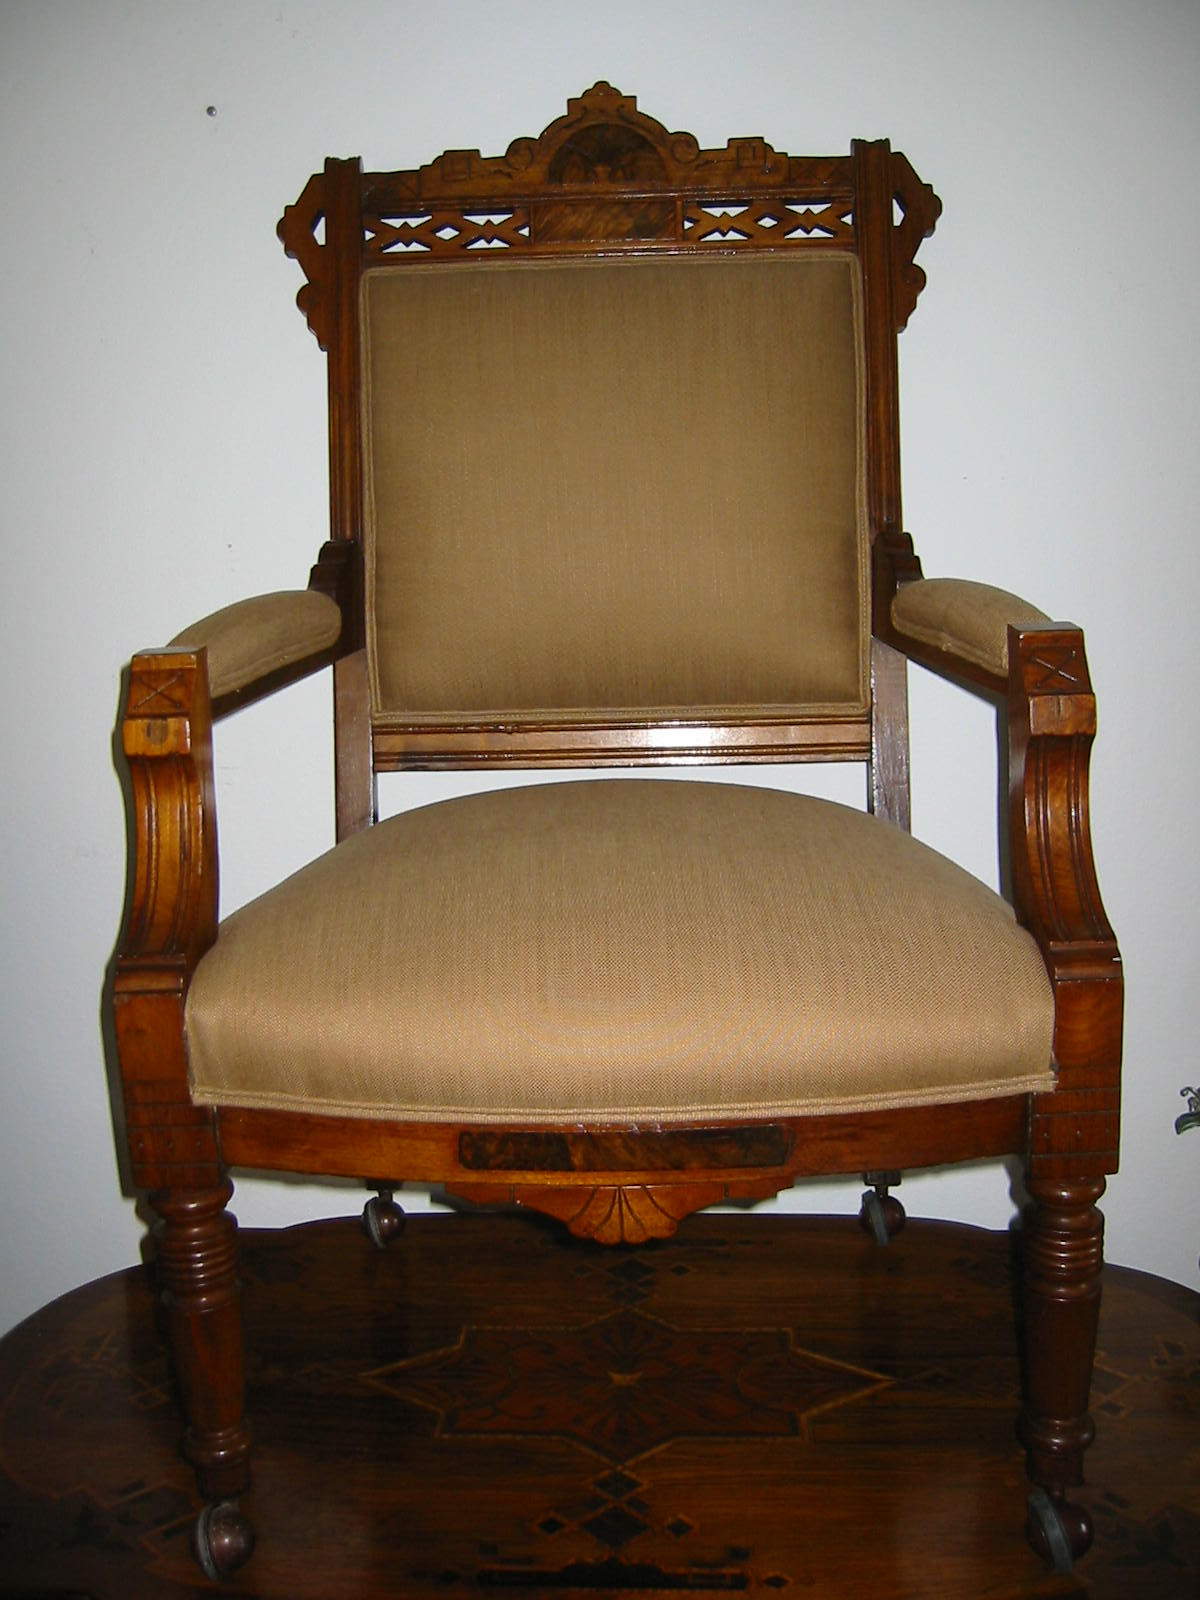 wood chairs for sale office chair standing desk empire crest antique arm antiques